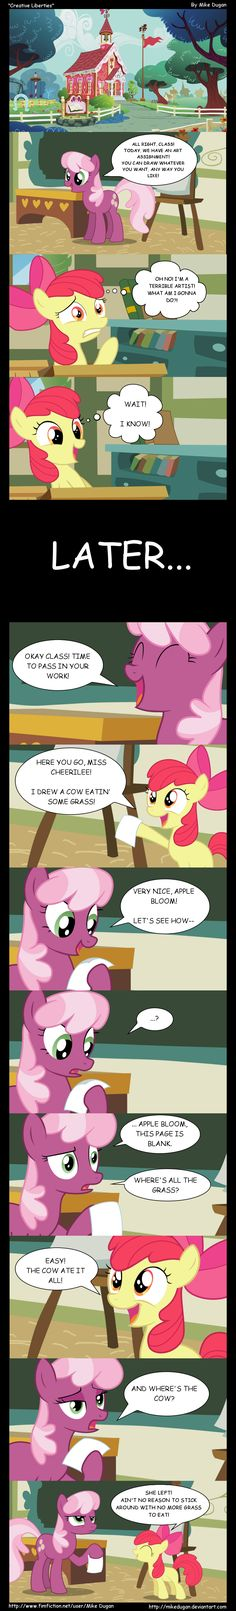 MLP Comic - Creative Liberties by MikeDugan.deviantart.com on @deviantART